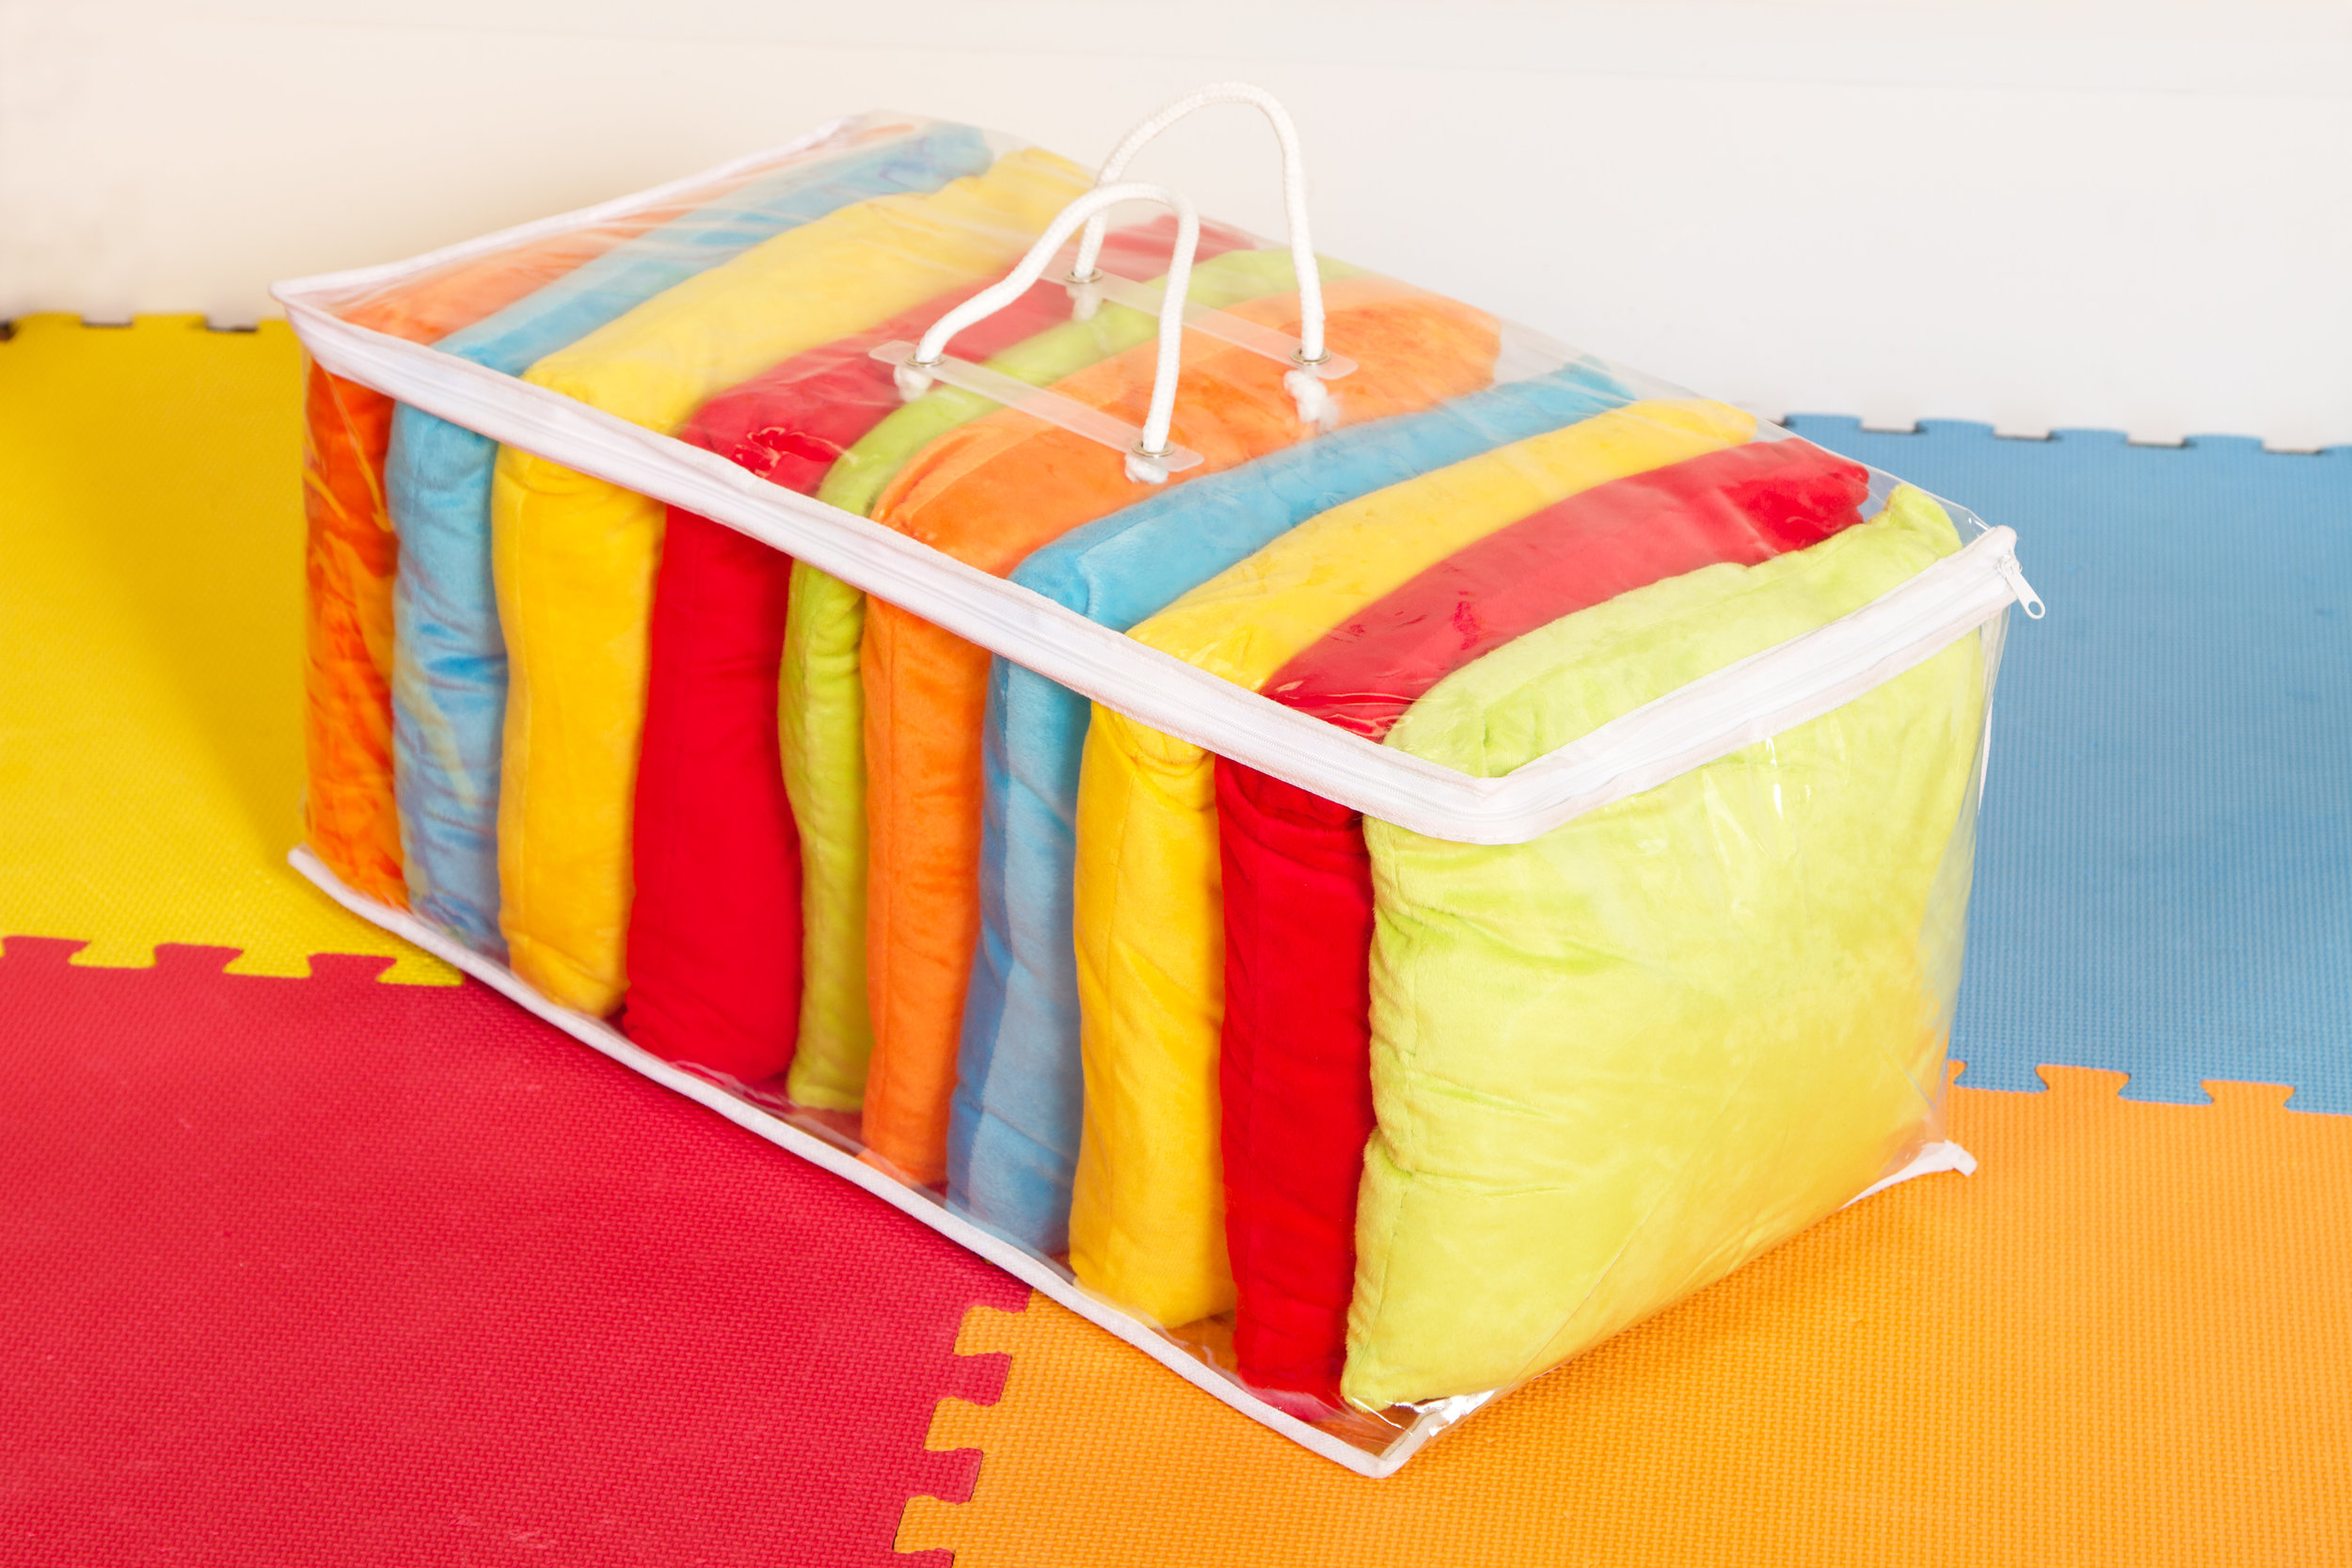 Eden-Softies-Cushions-Pack-brights-Bags-LF-1.jpg